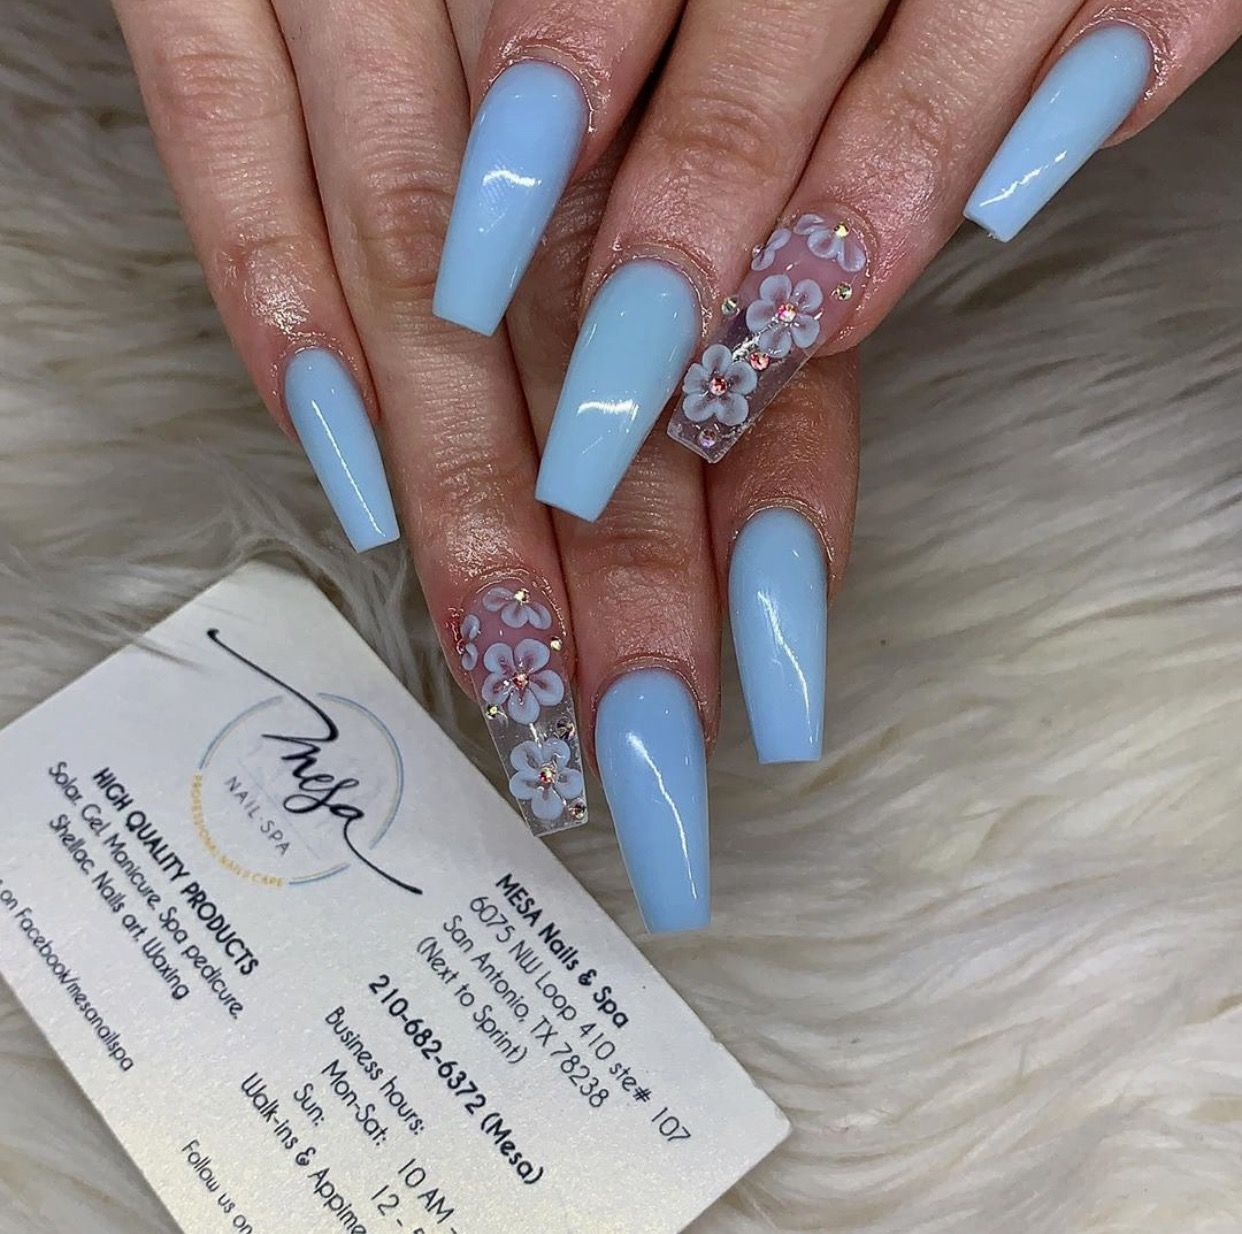 Pin By Brisza Herrera On Nails Quinceanera Nails Blue Acrylic Nails Baby Blue Acrylic Nails